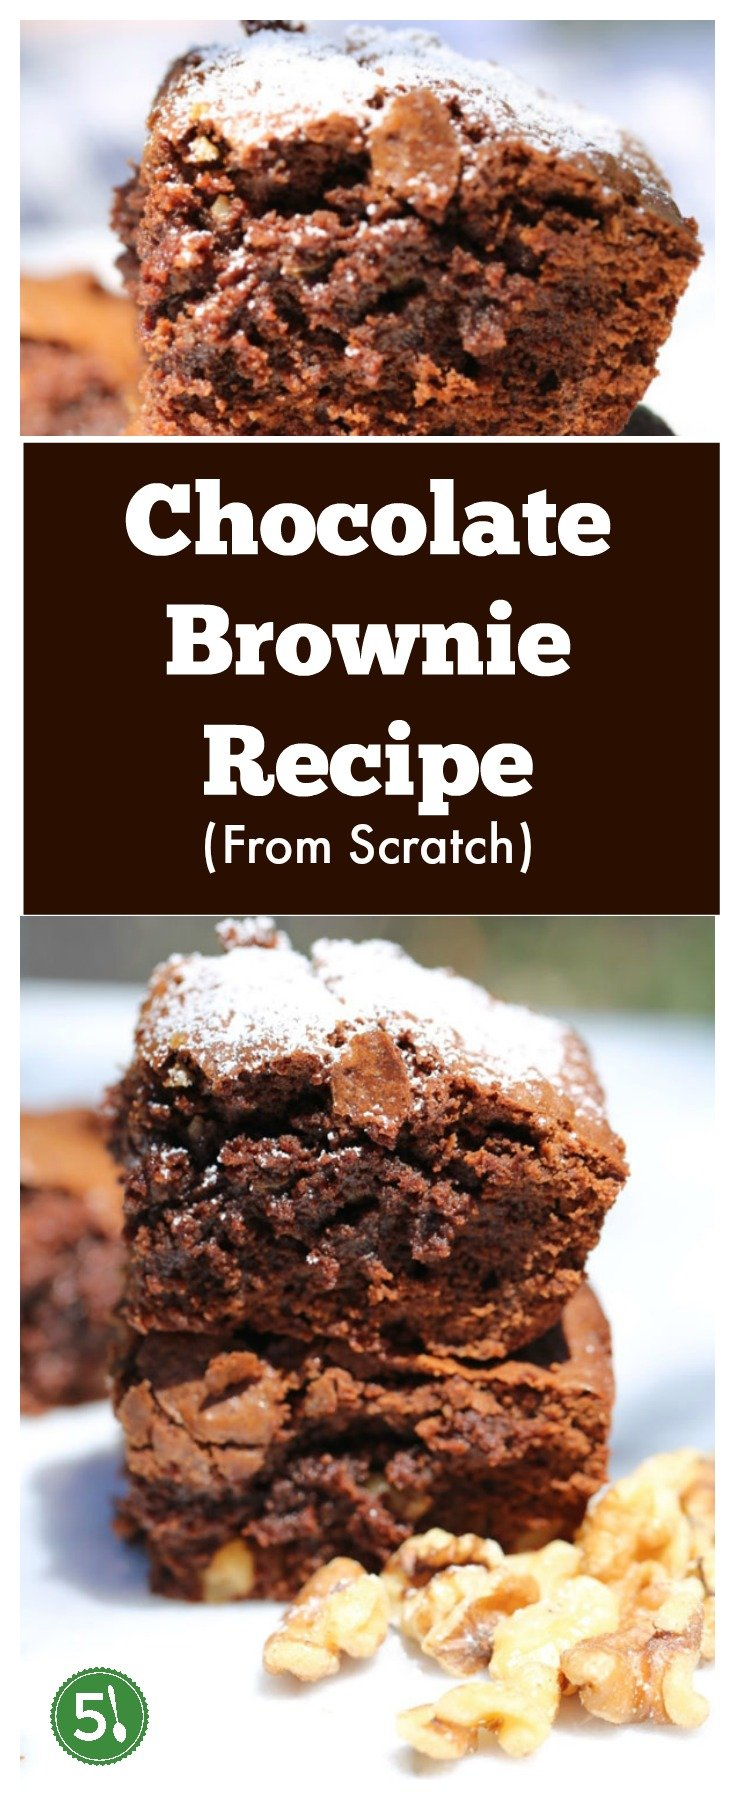 Chocolate Brownie recipe from scratch that is gooey, chocolatey and easy to whip up for a quick homemade treat.